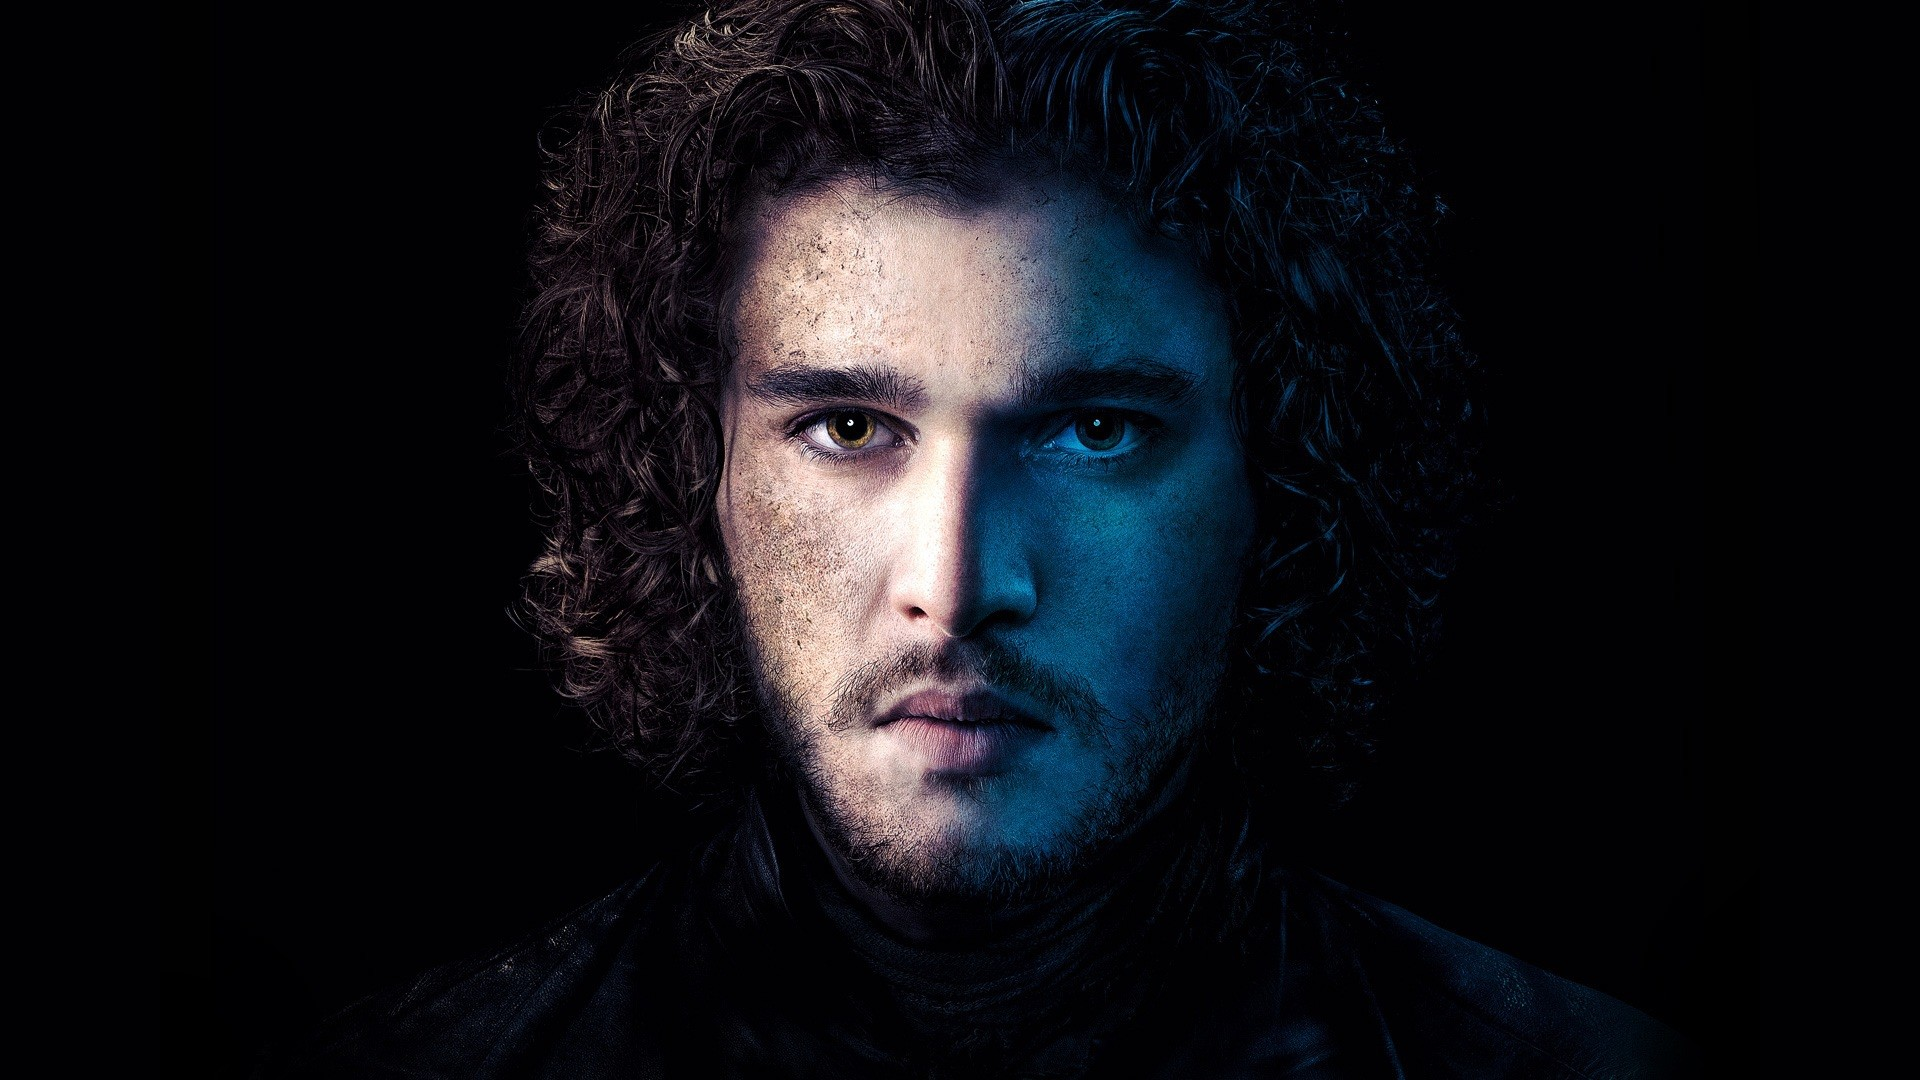 Res: 1920x1080, Download now full hd wallpaper game of thrones jon snow portrait brown eyes  dark ...